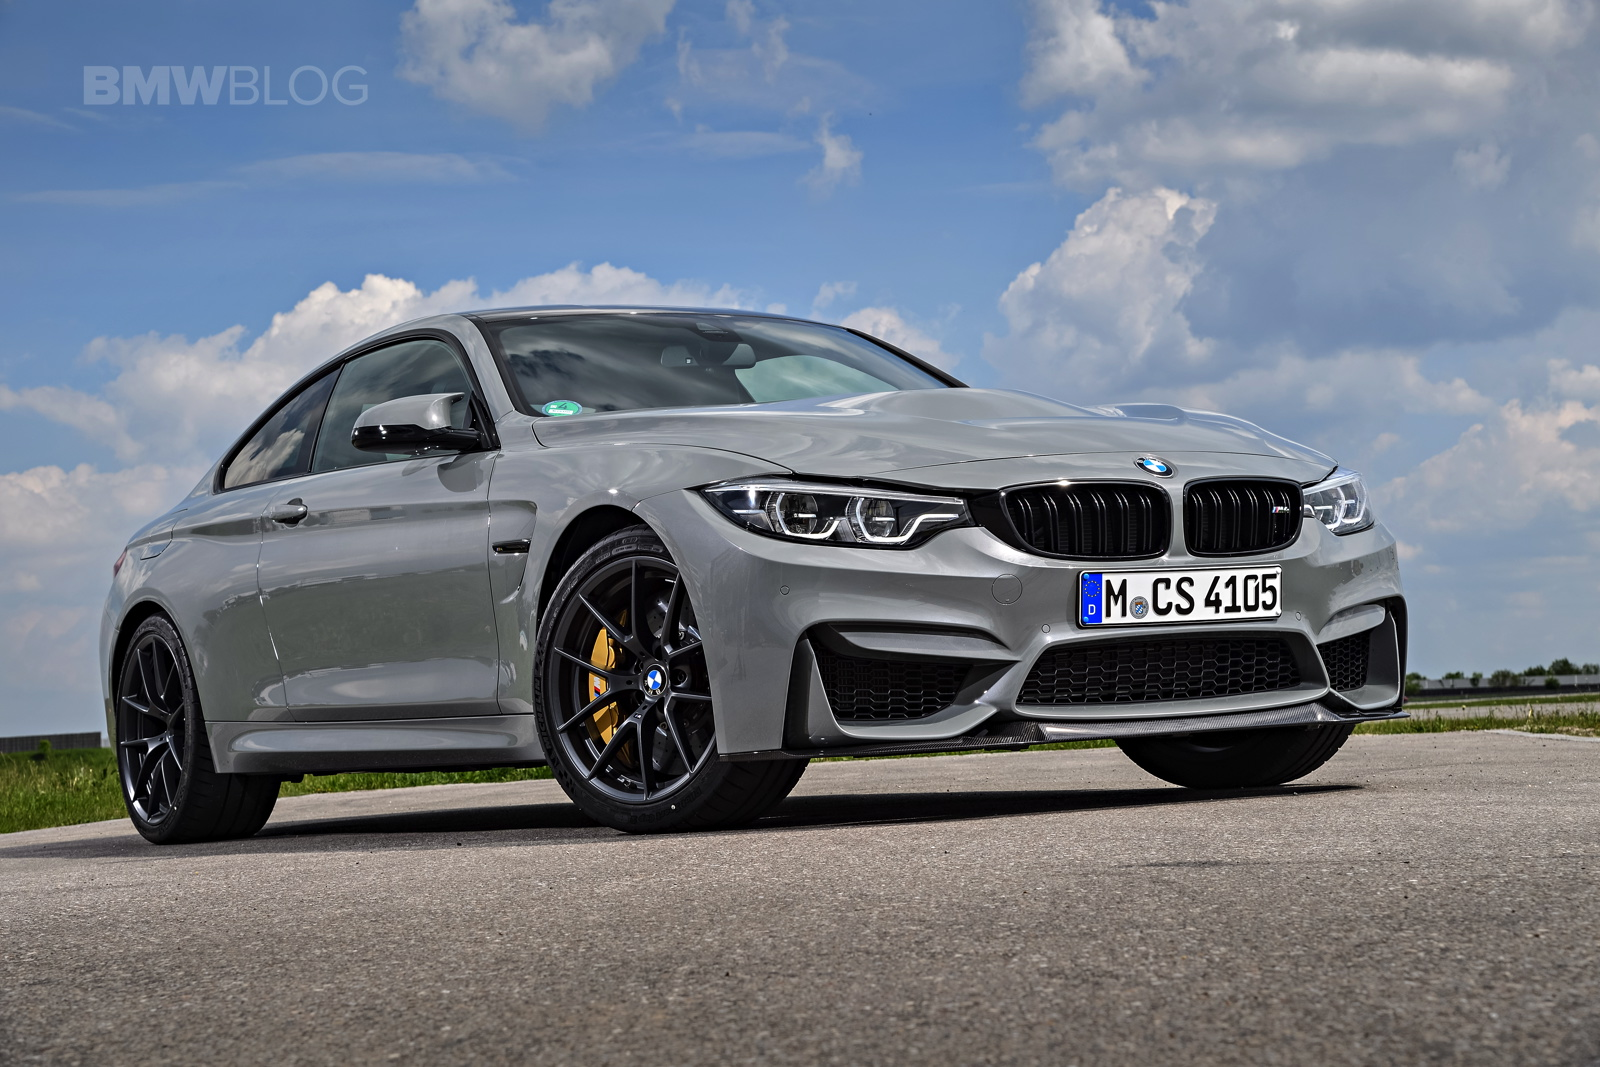 BMW M4 CS LIME ROCK GREY 08